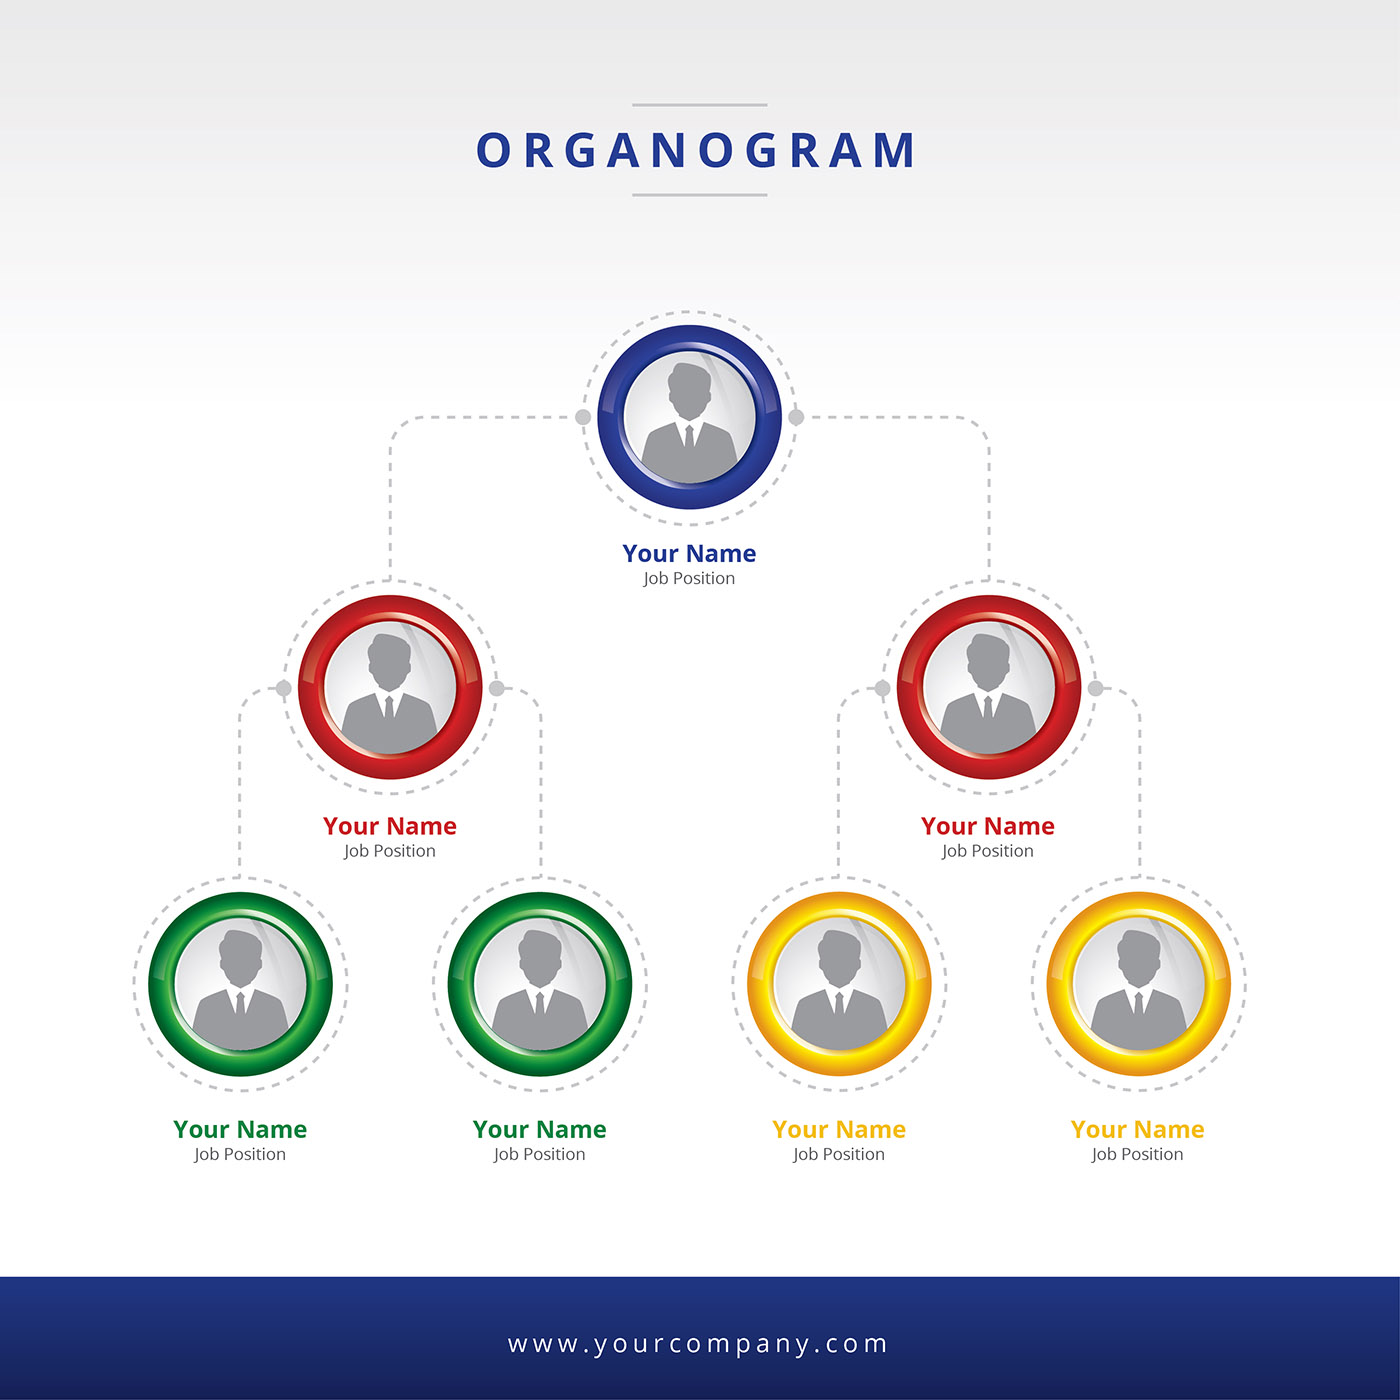 organigram template - organogram layout vector download free vector art stock